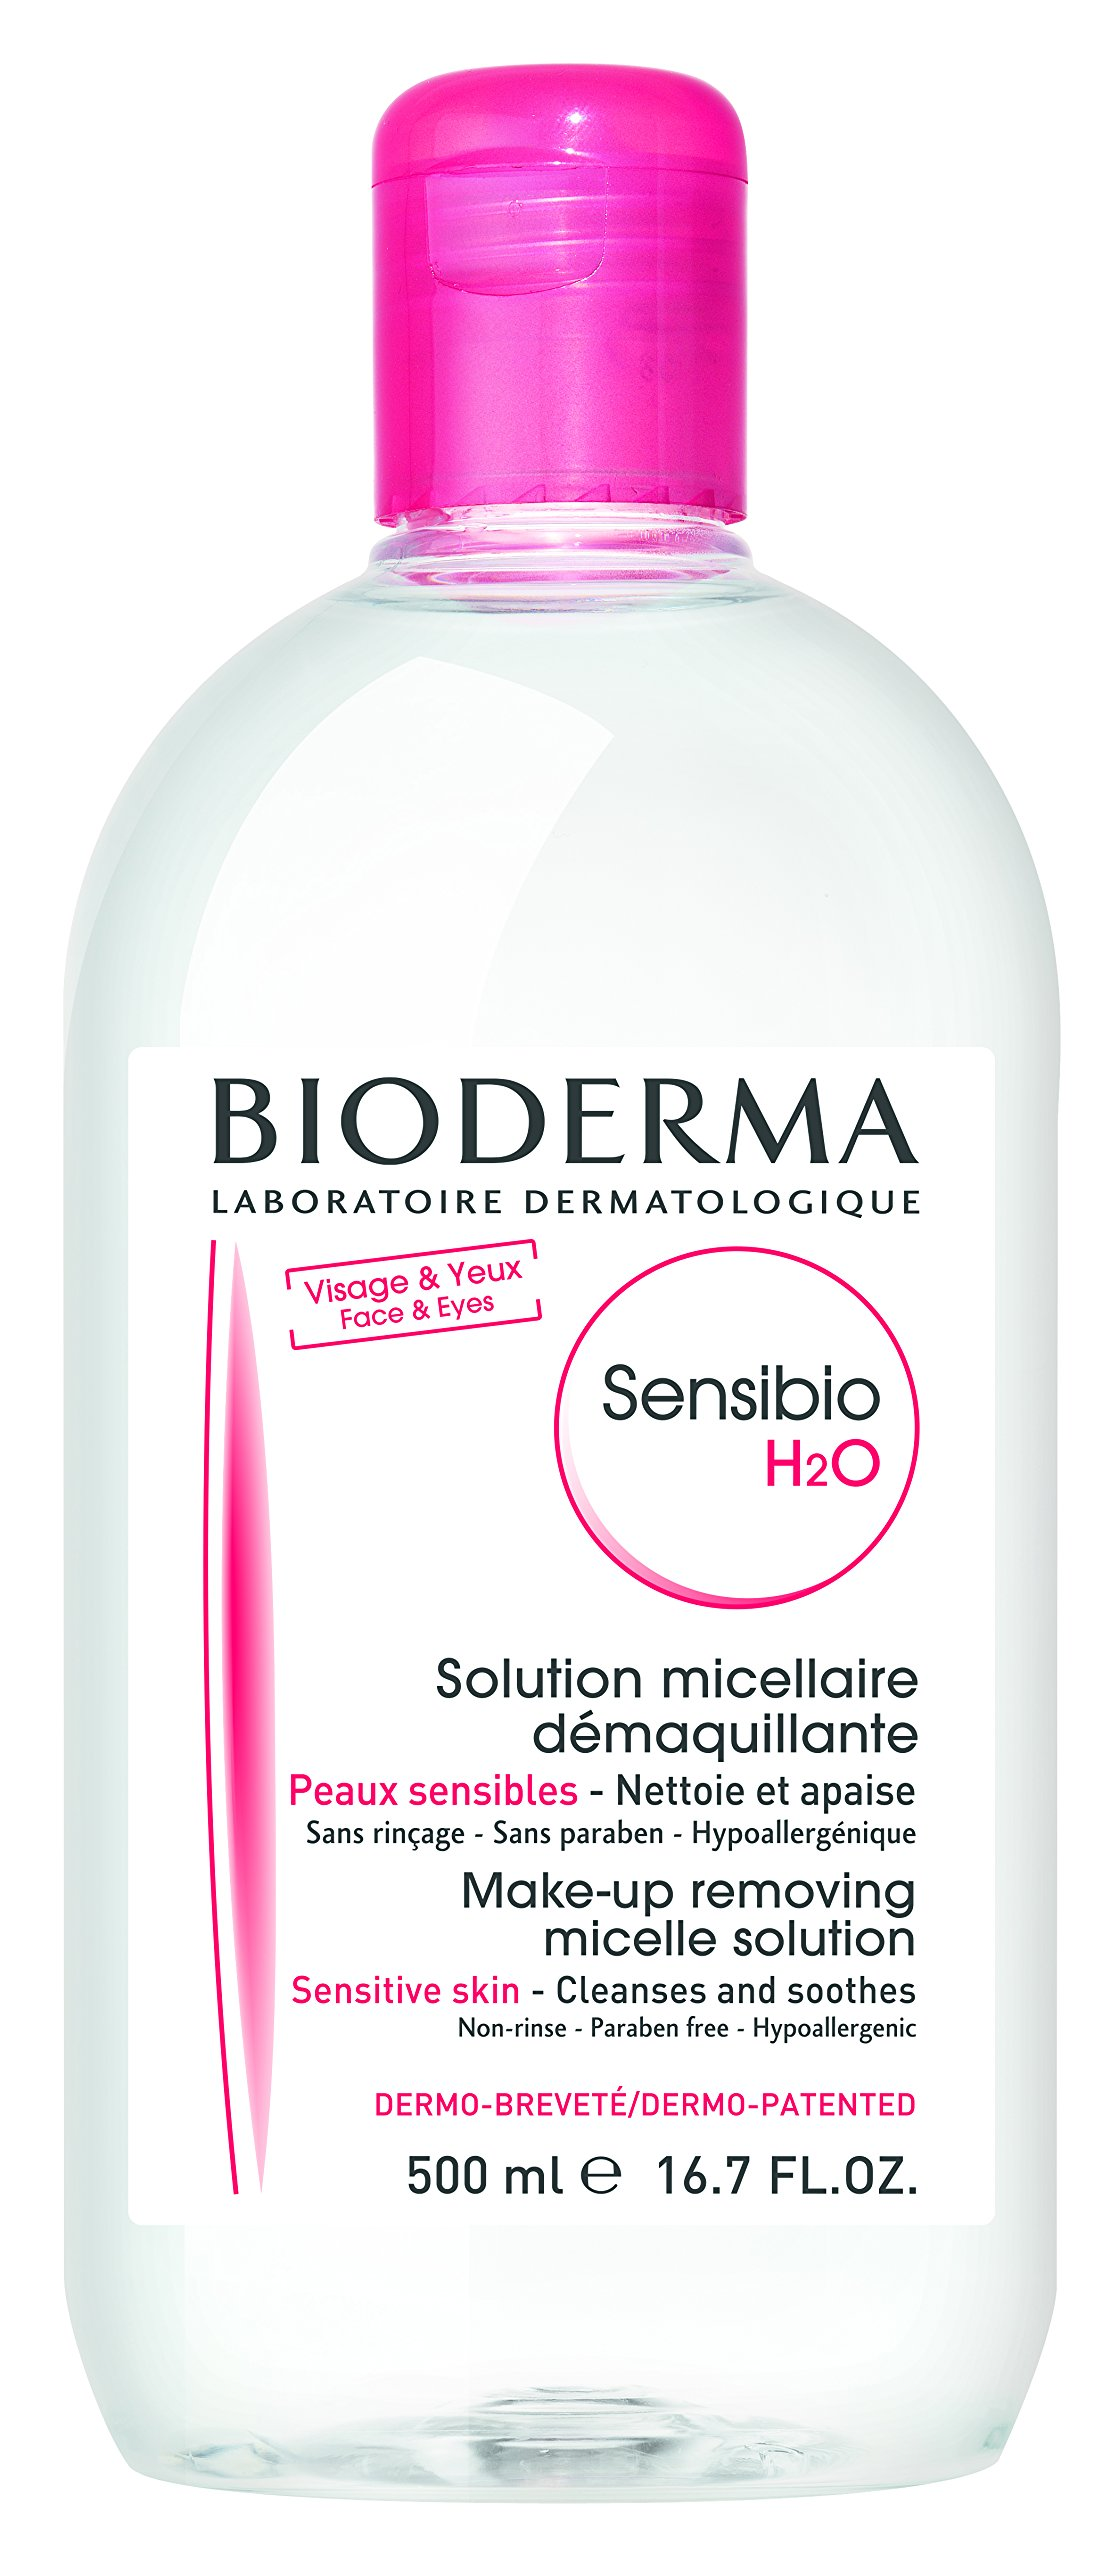 Bioderma Sensibio H2O Soothing Micellar Cleansing Water and Makeup Removing Solution for Sensitive Skin - Face and Eyes - 16.7 Fl Oz (Pack of 1) by Bioderma